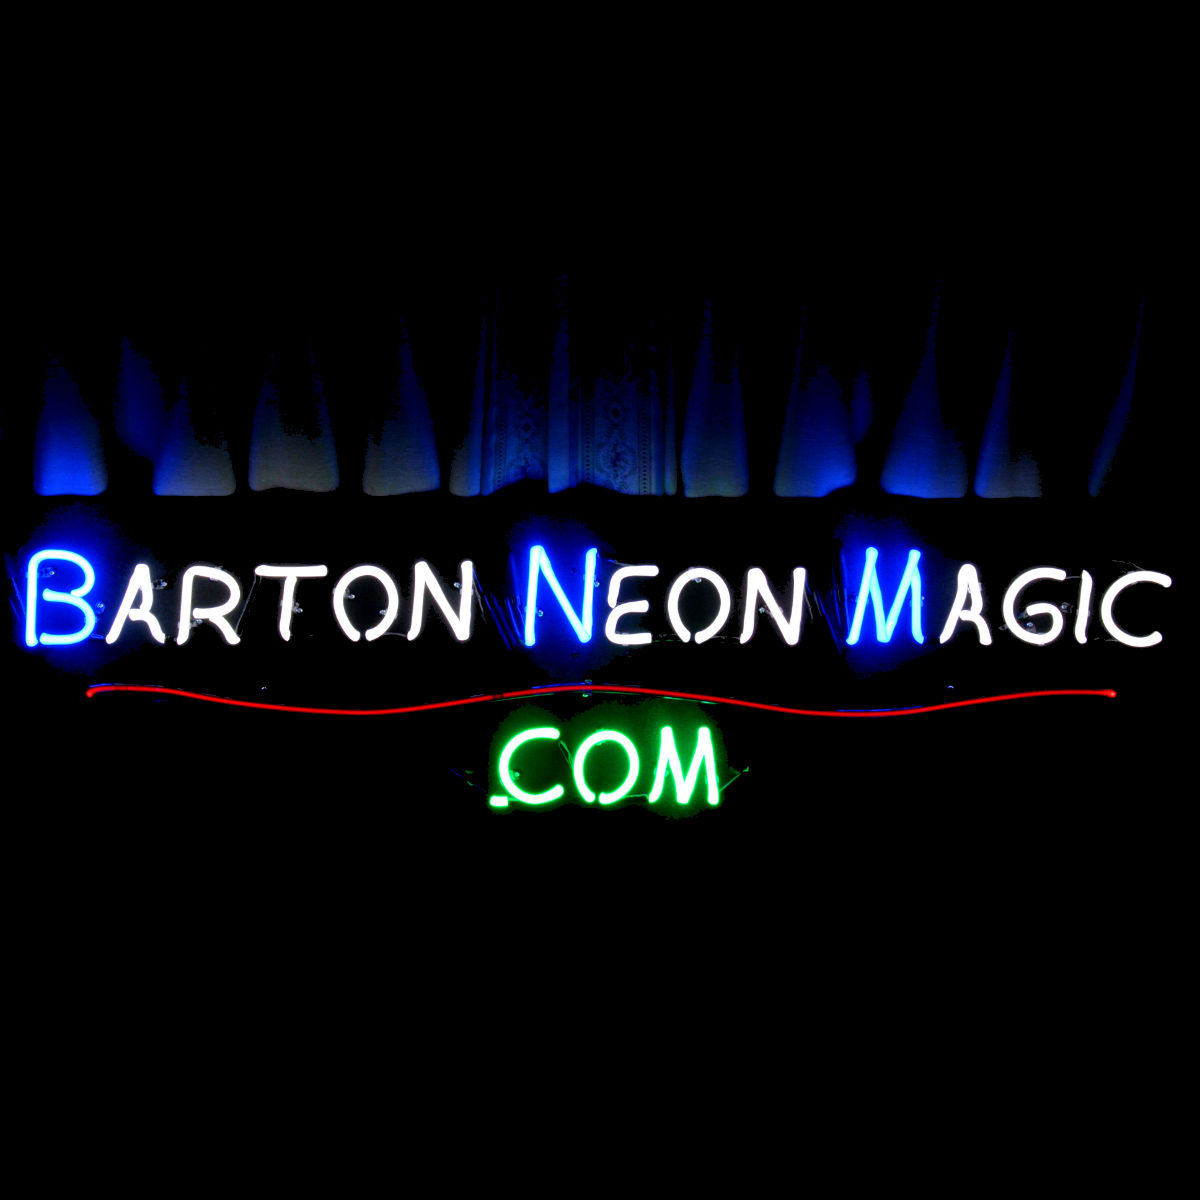 ULTRA-MODERN NEON LIGHT ARTWORKS by John Barton - BartonNeonMagic.com